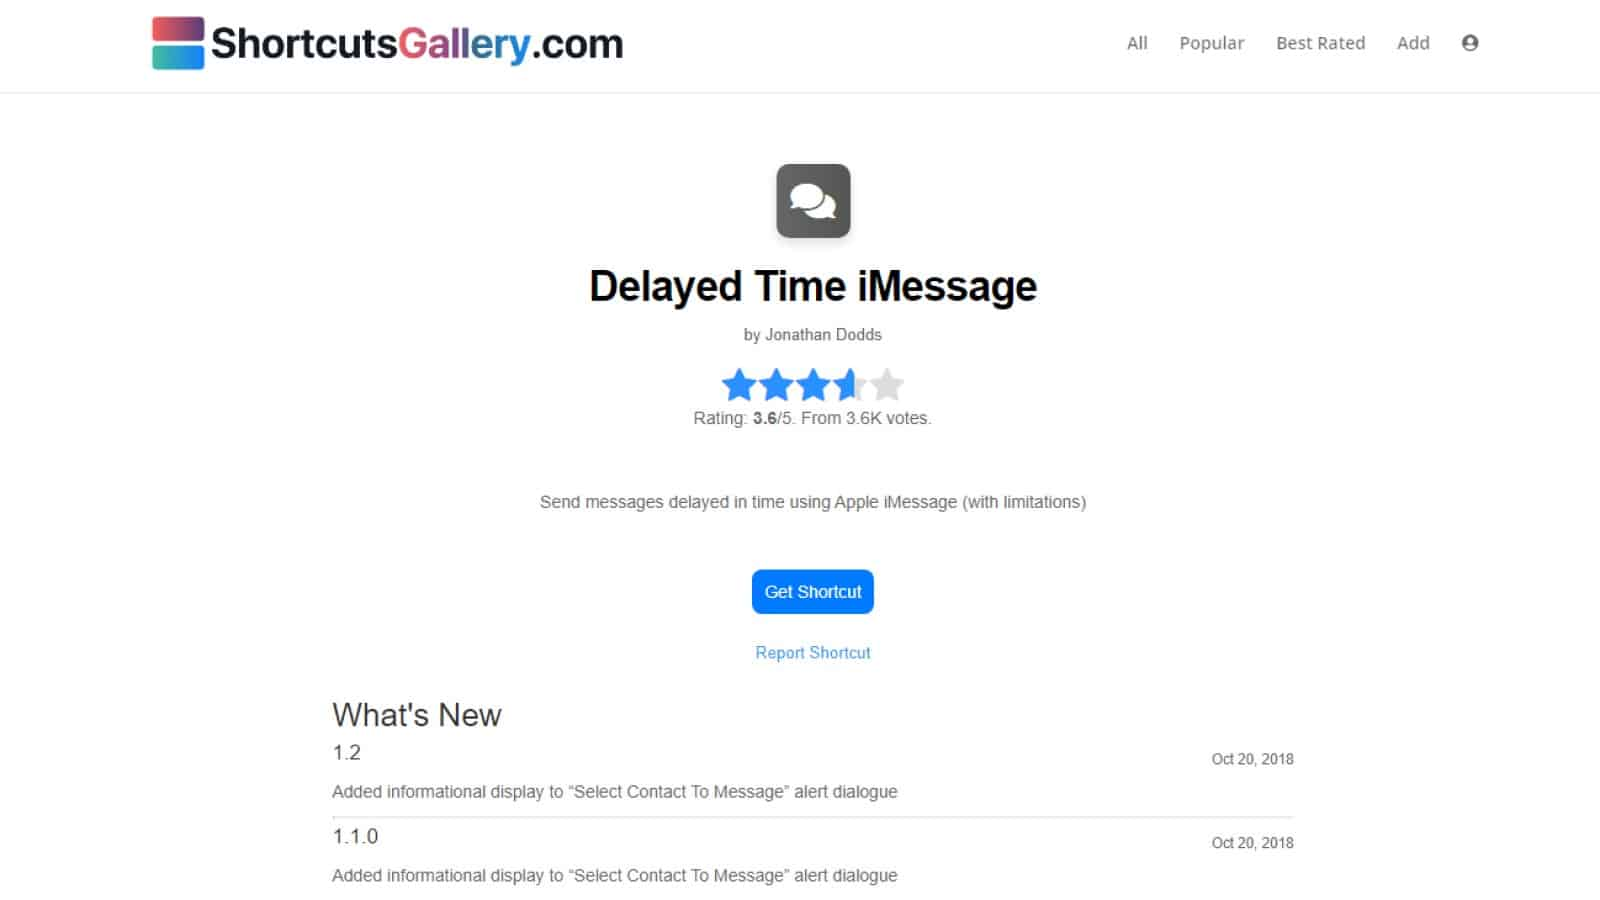 delayed time imessage shortcut link